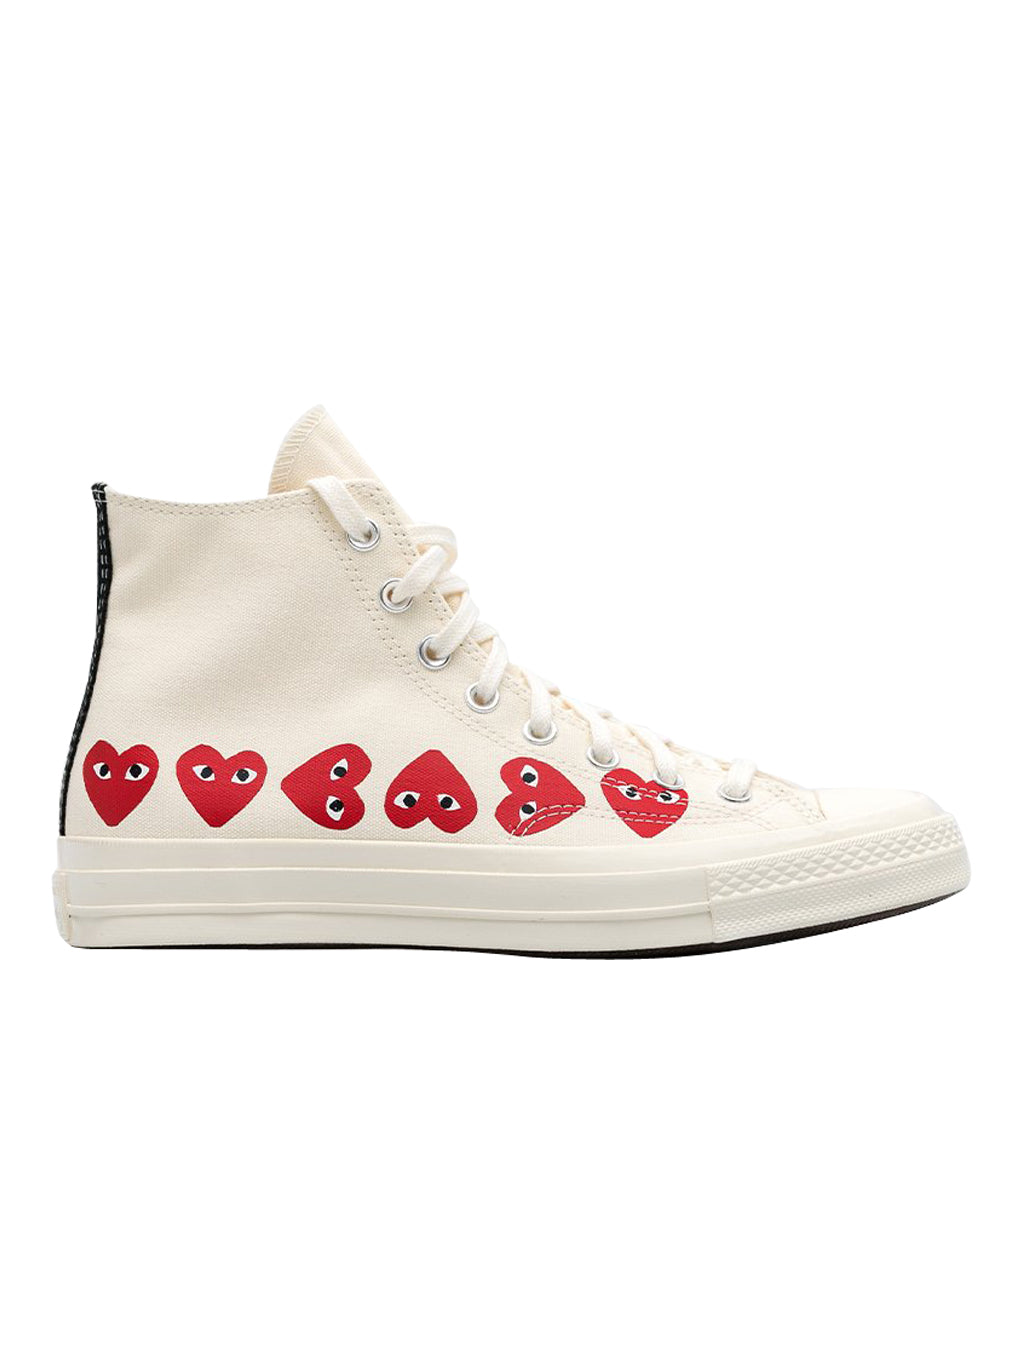 Ivory Converse Red Multi-Heart Chuck 70 Sneakers